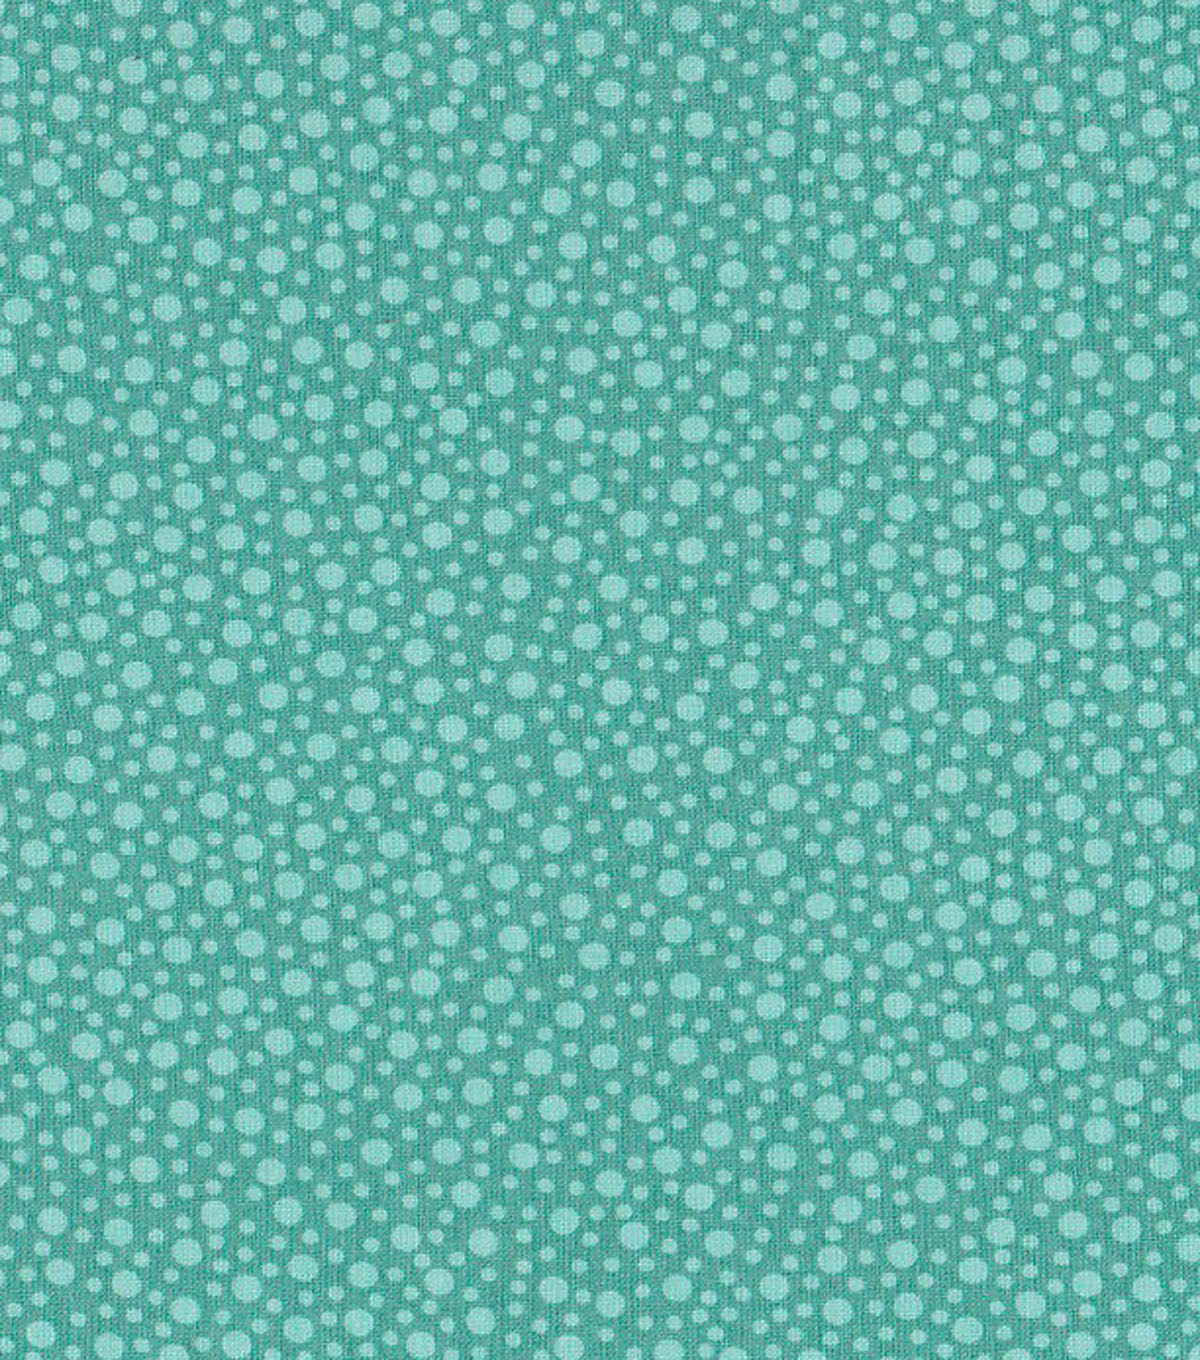 Keepsake Calico Cotton Fabric-Minty Small Dot Blender